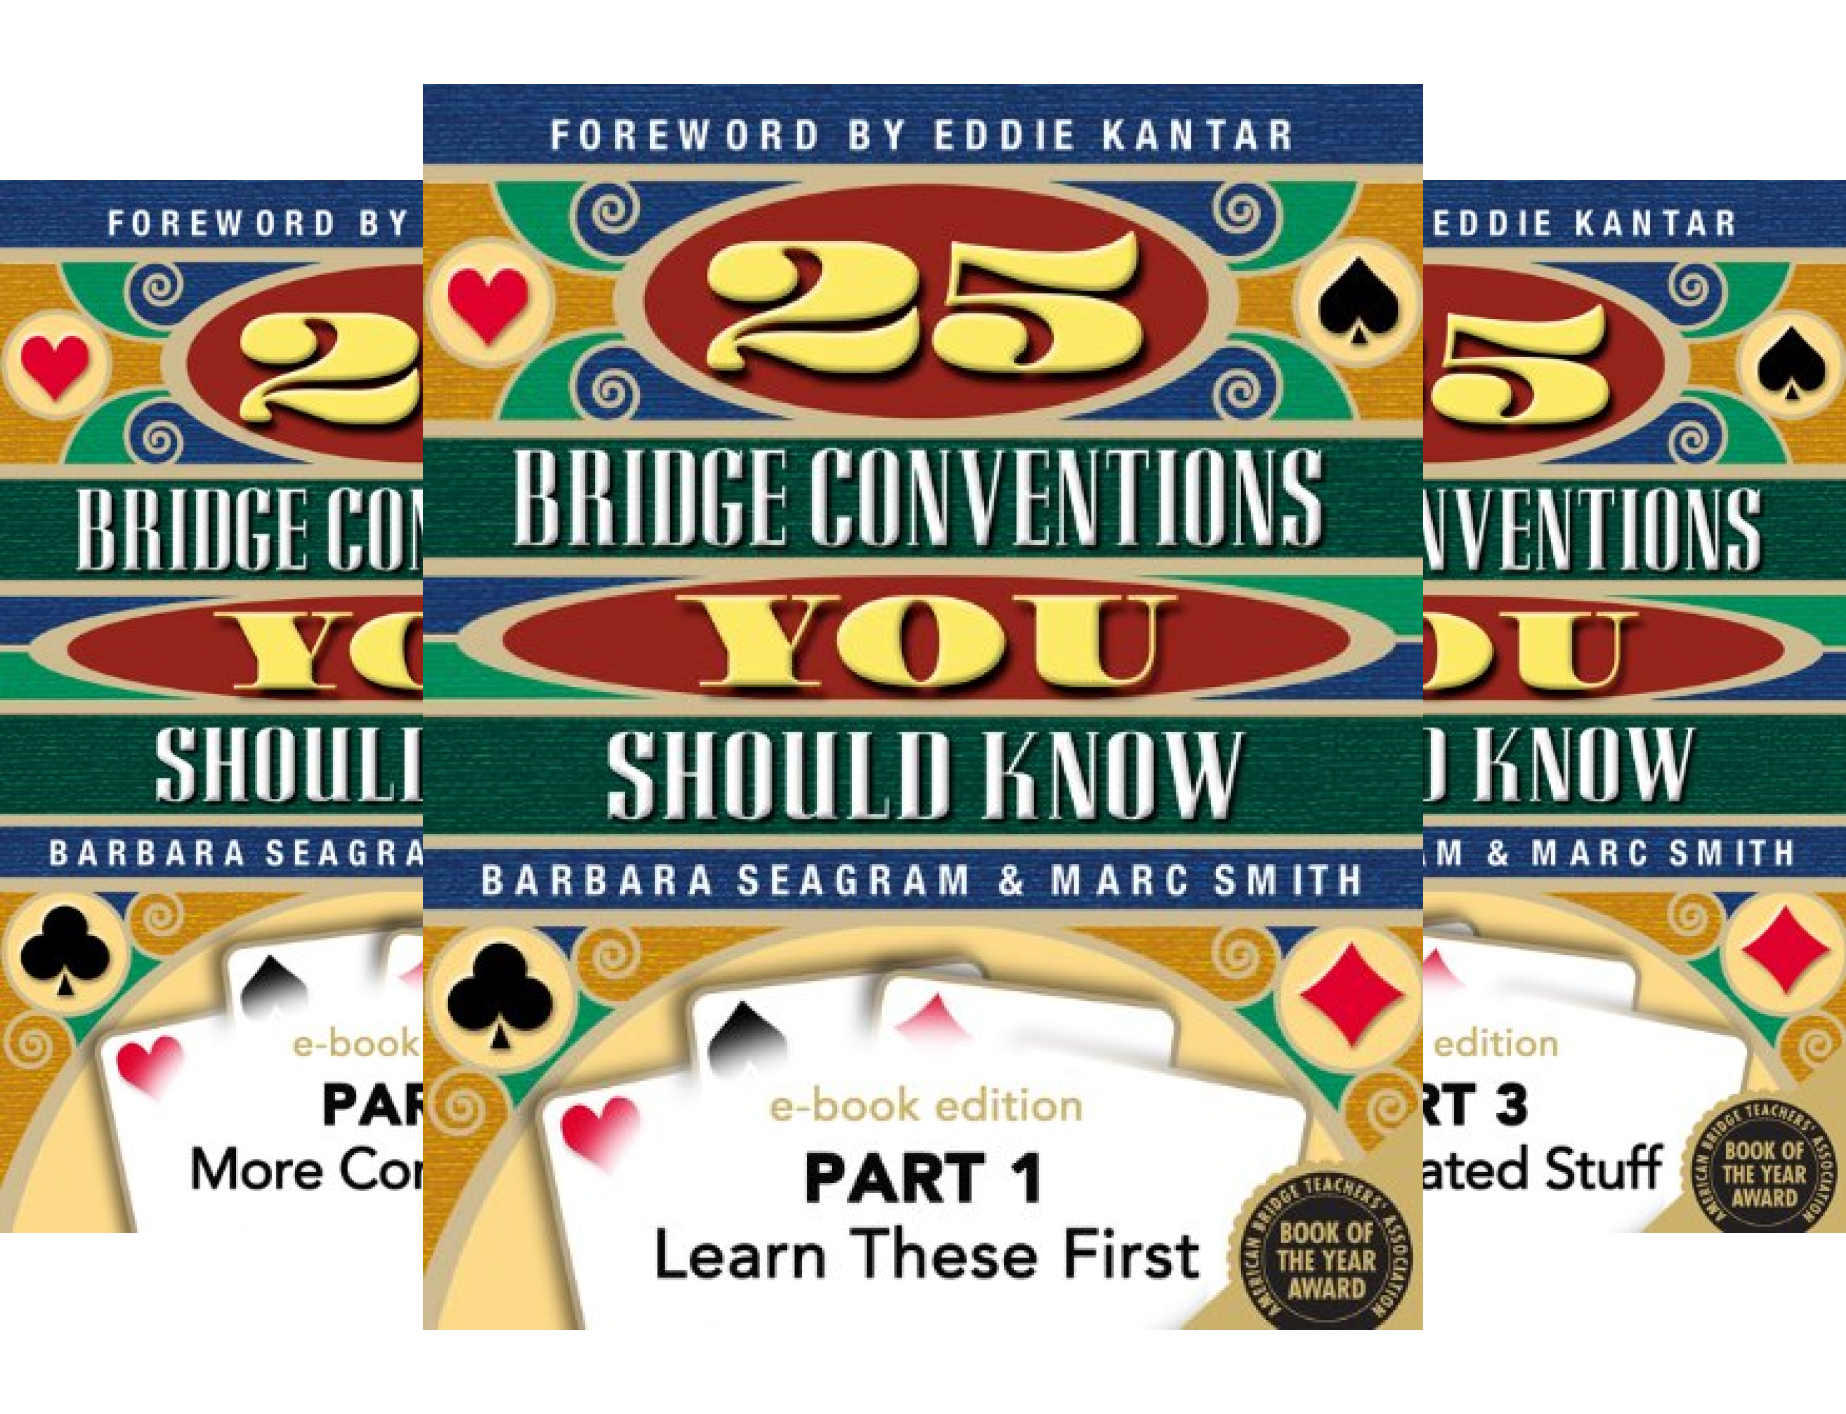 25-bridge-conventions-you-should-know-ebook-edition-3-book-series